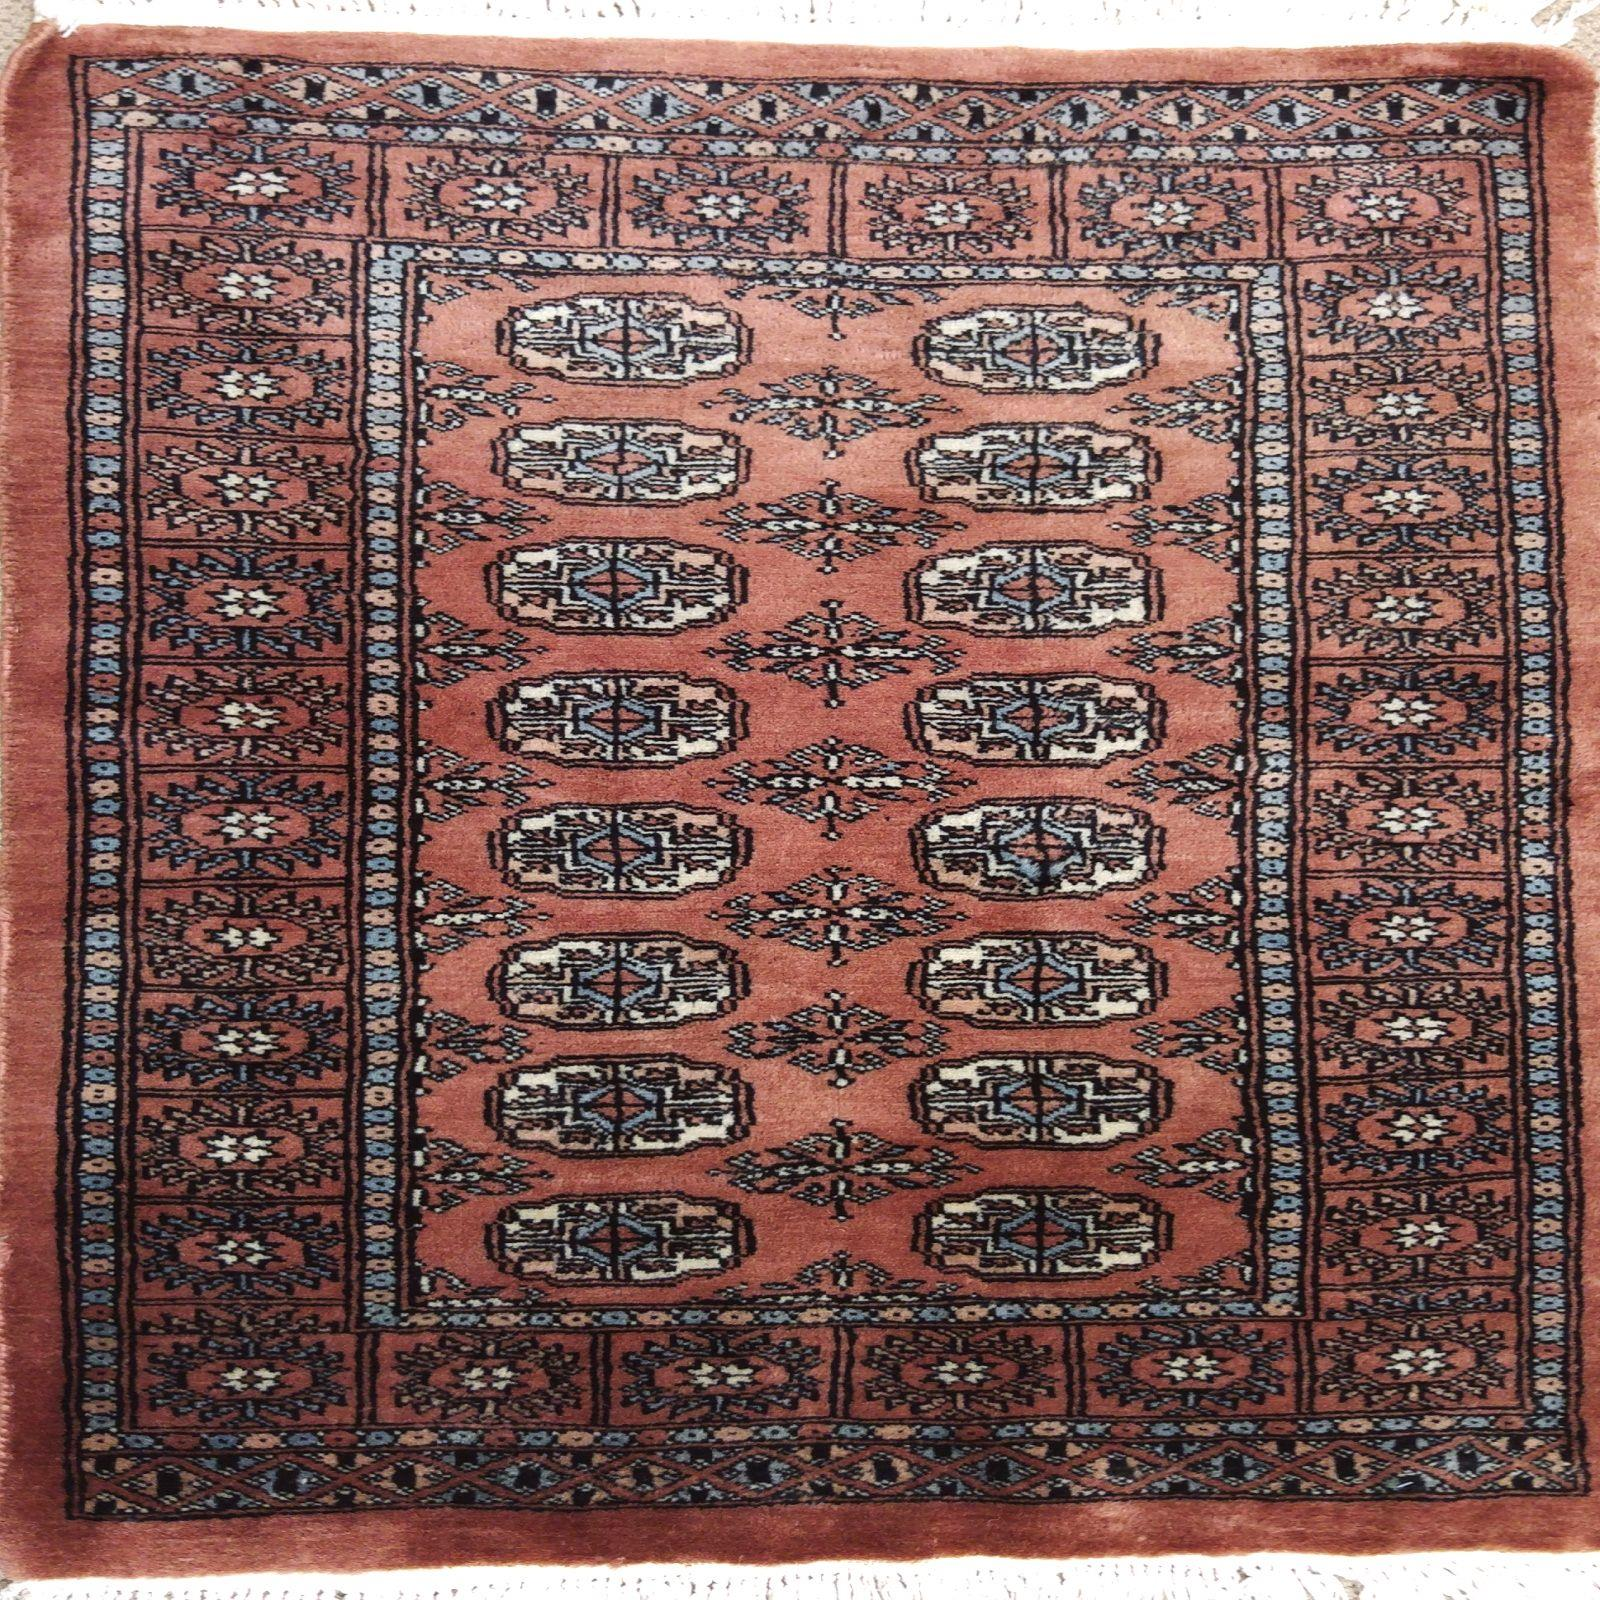 Pakistan Bokhara Rug (122 X 76cm) From Queenstreet Carpets